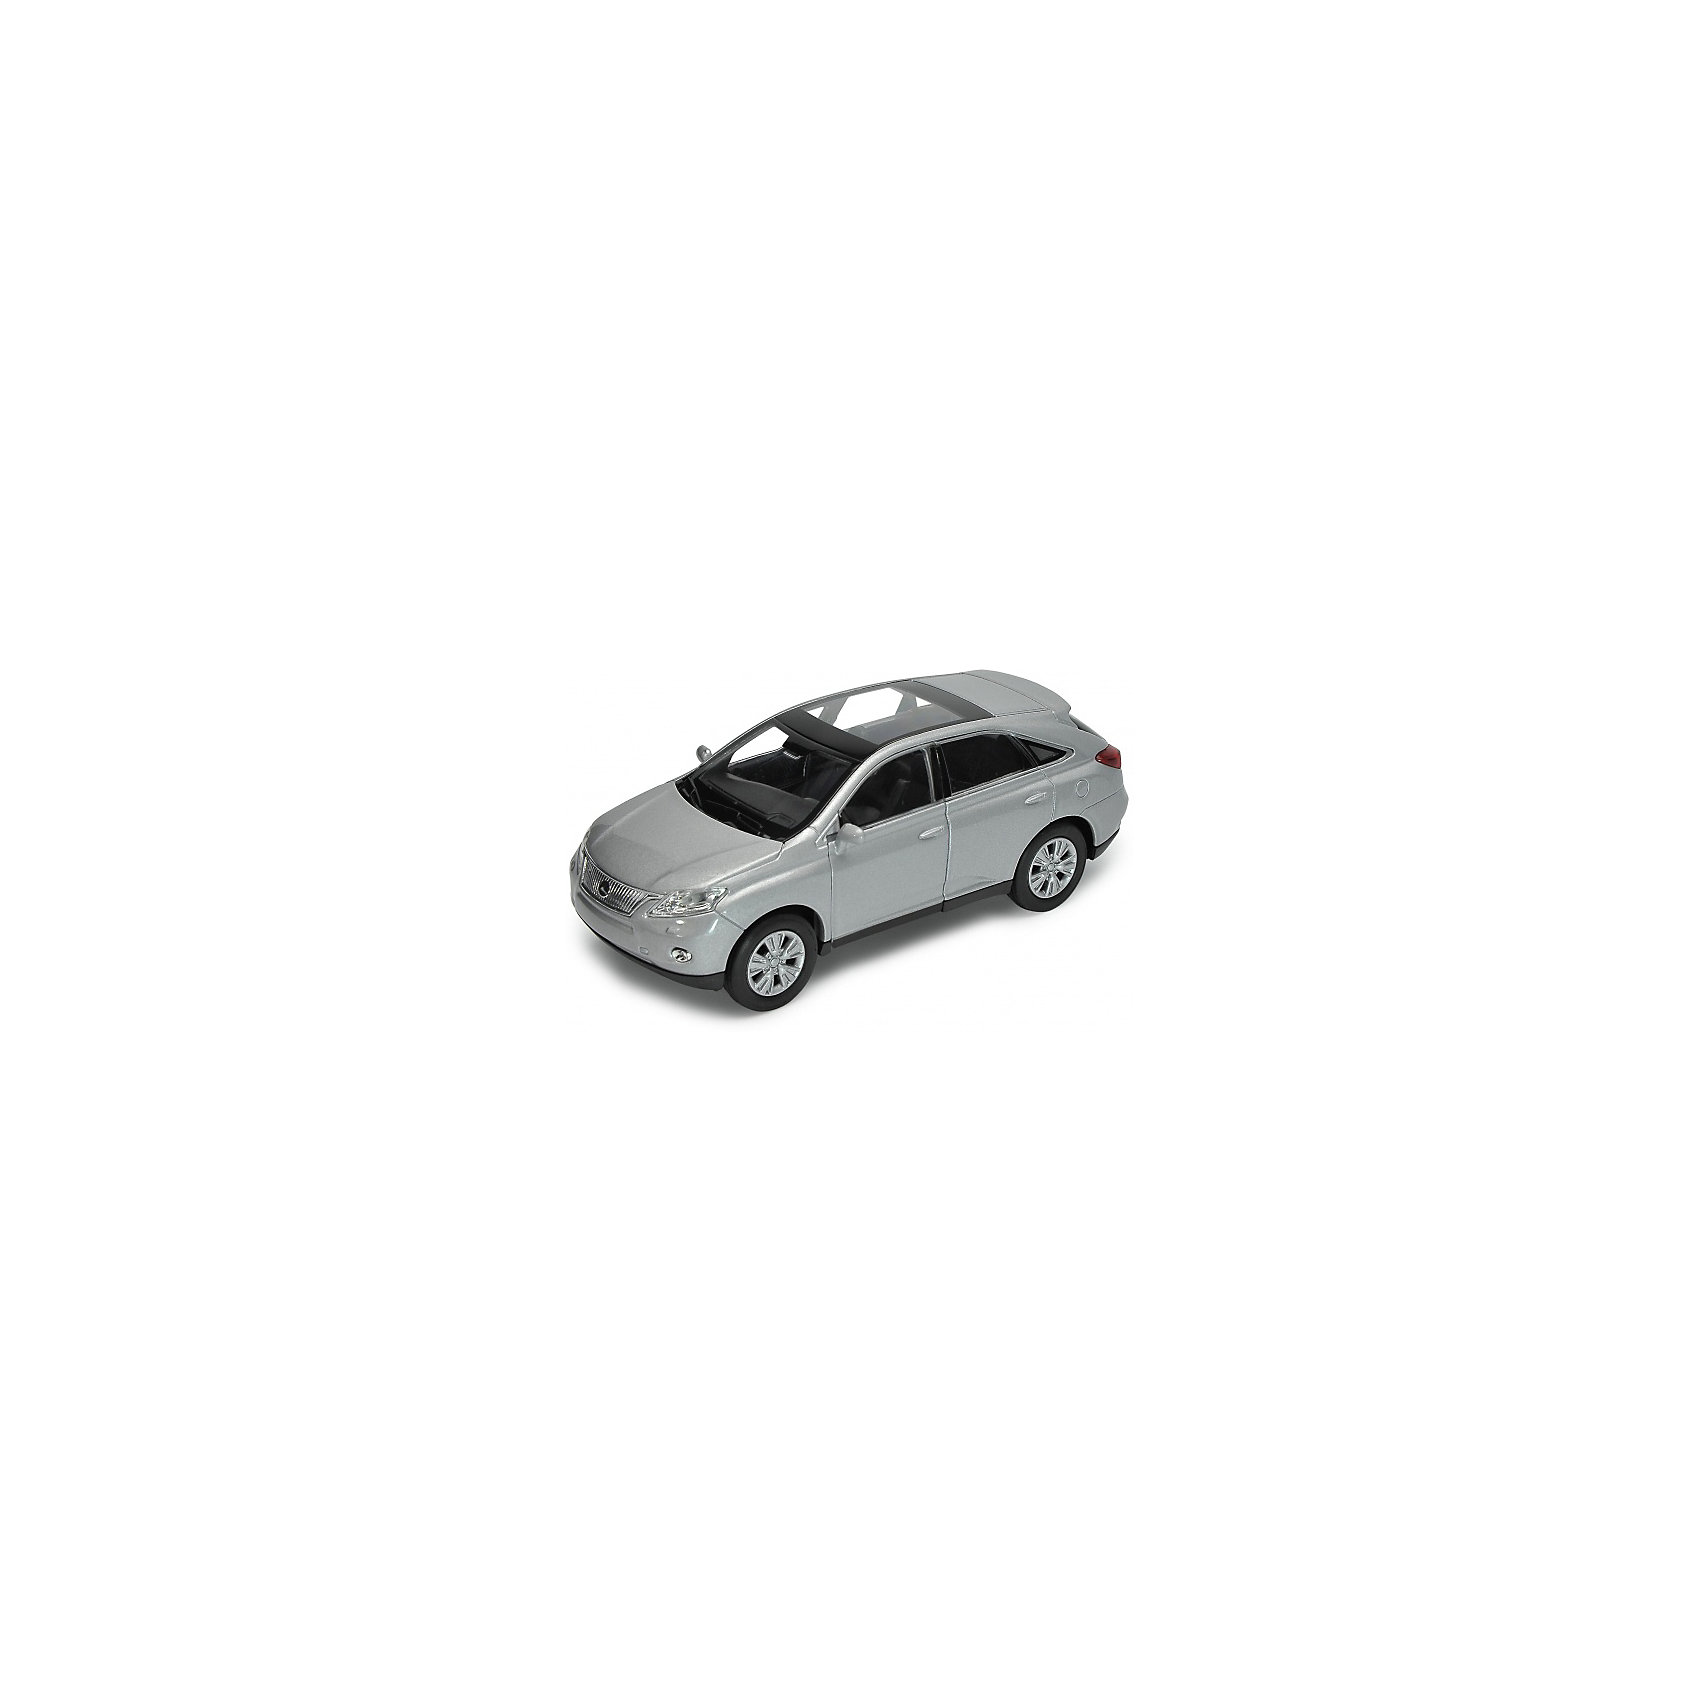 Welly Модель машины 1:34-39 Lexus RX450H, Welly автомобиль welly nissan gtr 1 34 39 белый 43632